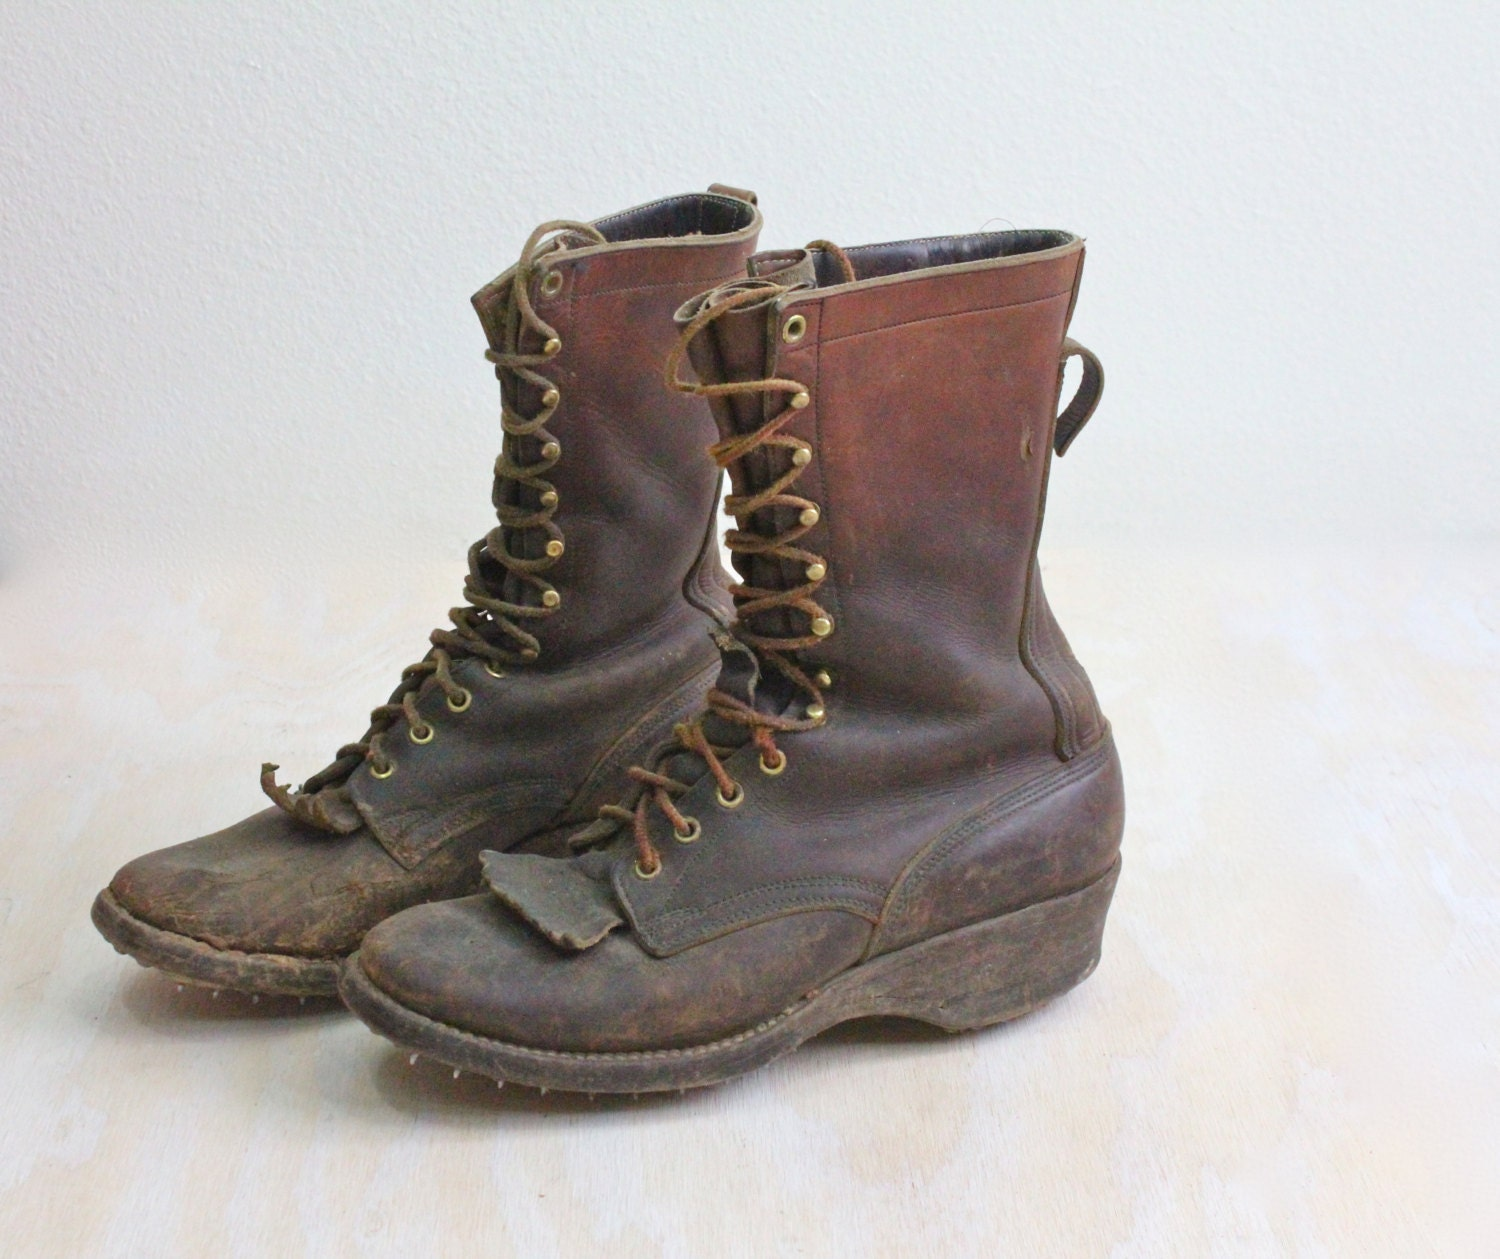 vintage s logging caulk spiked boots by